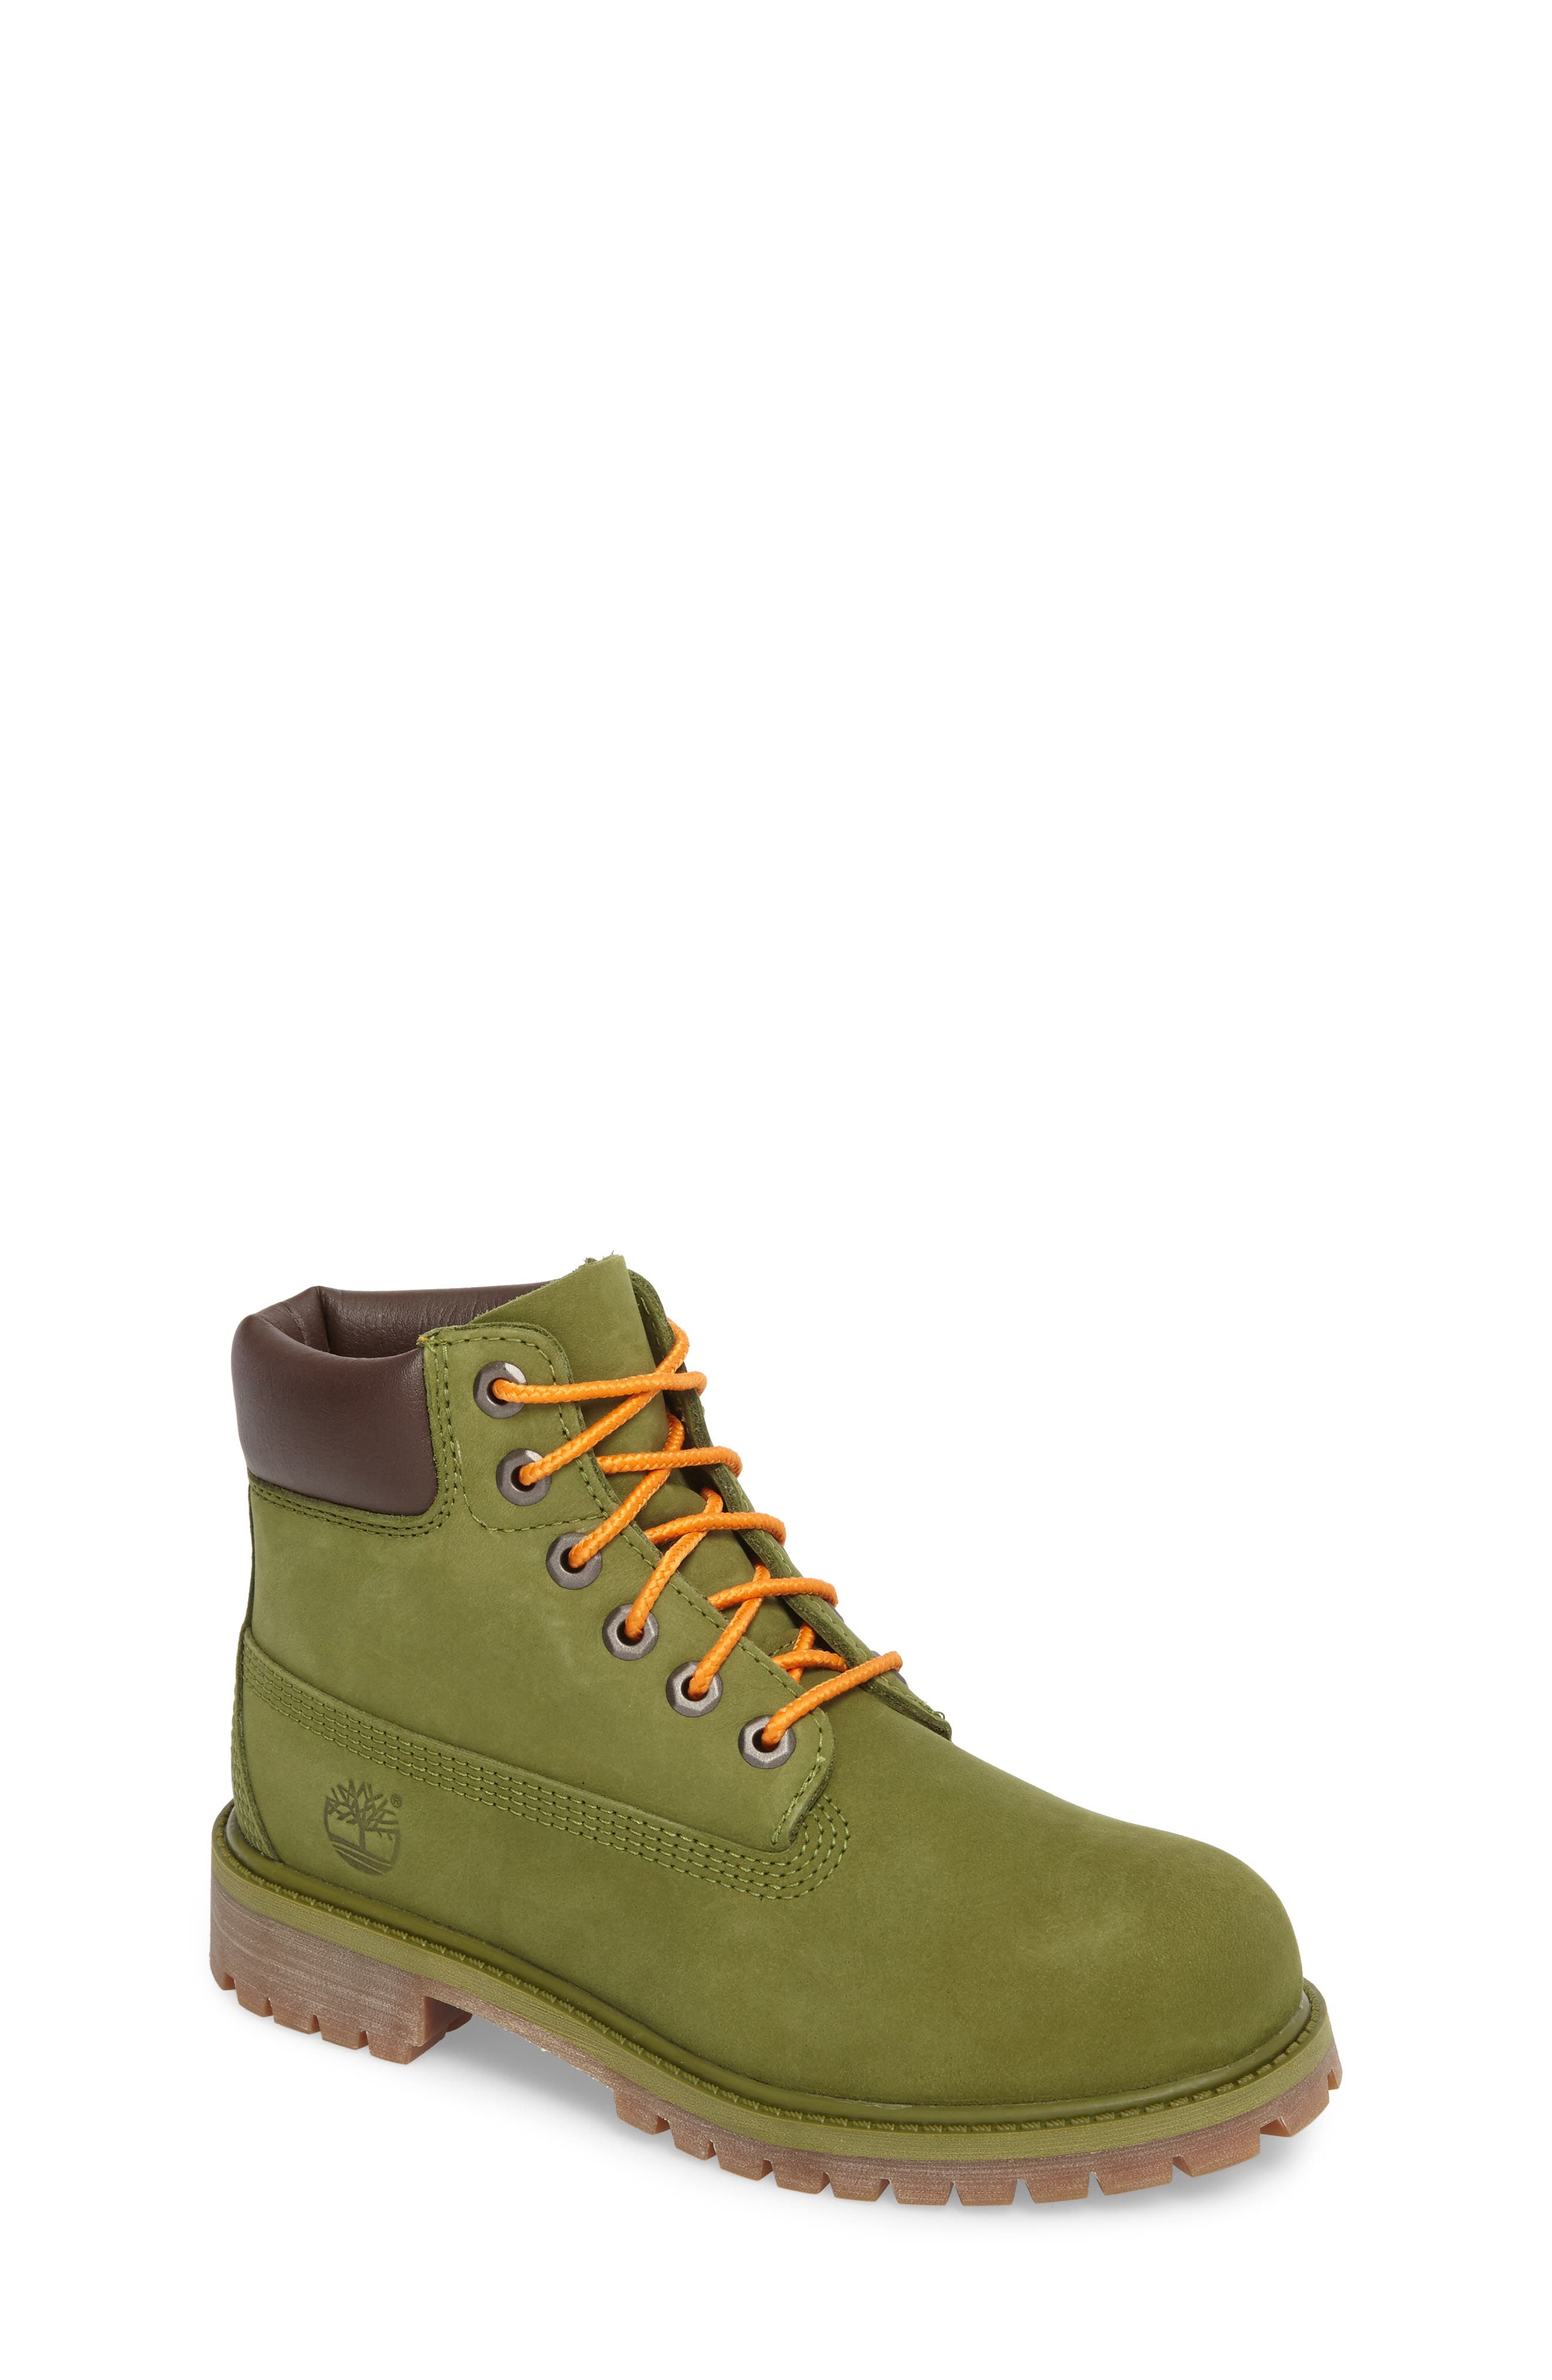 Alternate Image 1 Selected - Timberland 6-Inch Premium Waterproof Boot (Walker, Toddler, Little Kid & Big Kid)